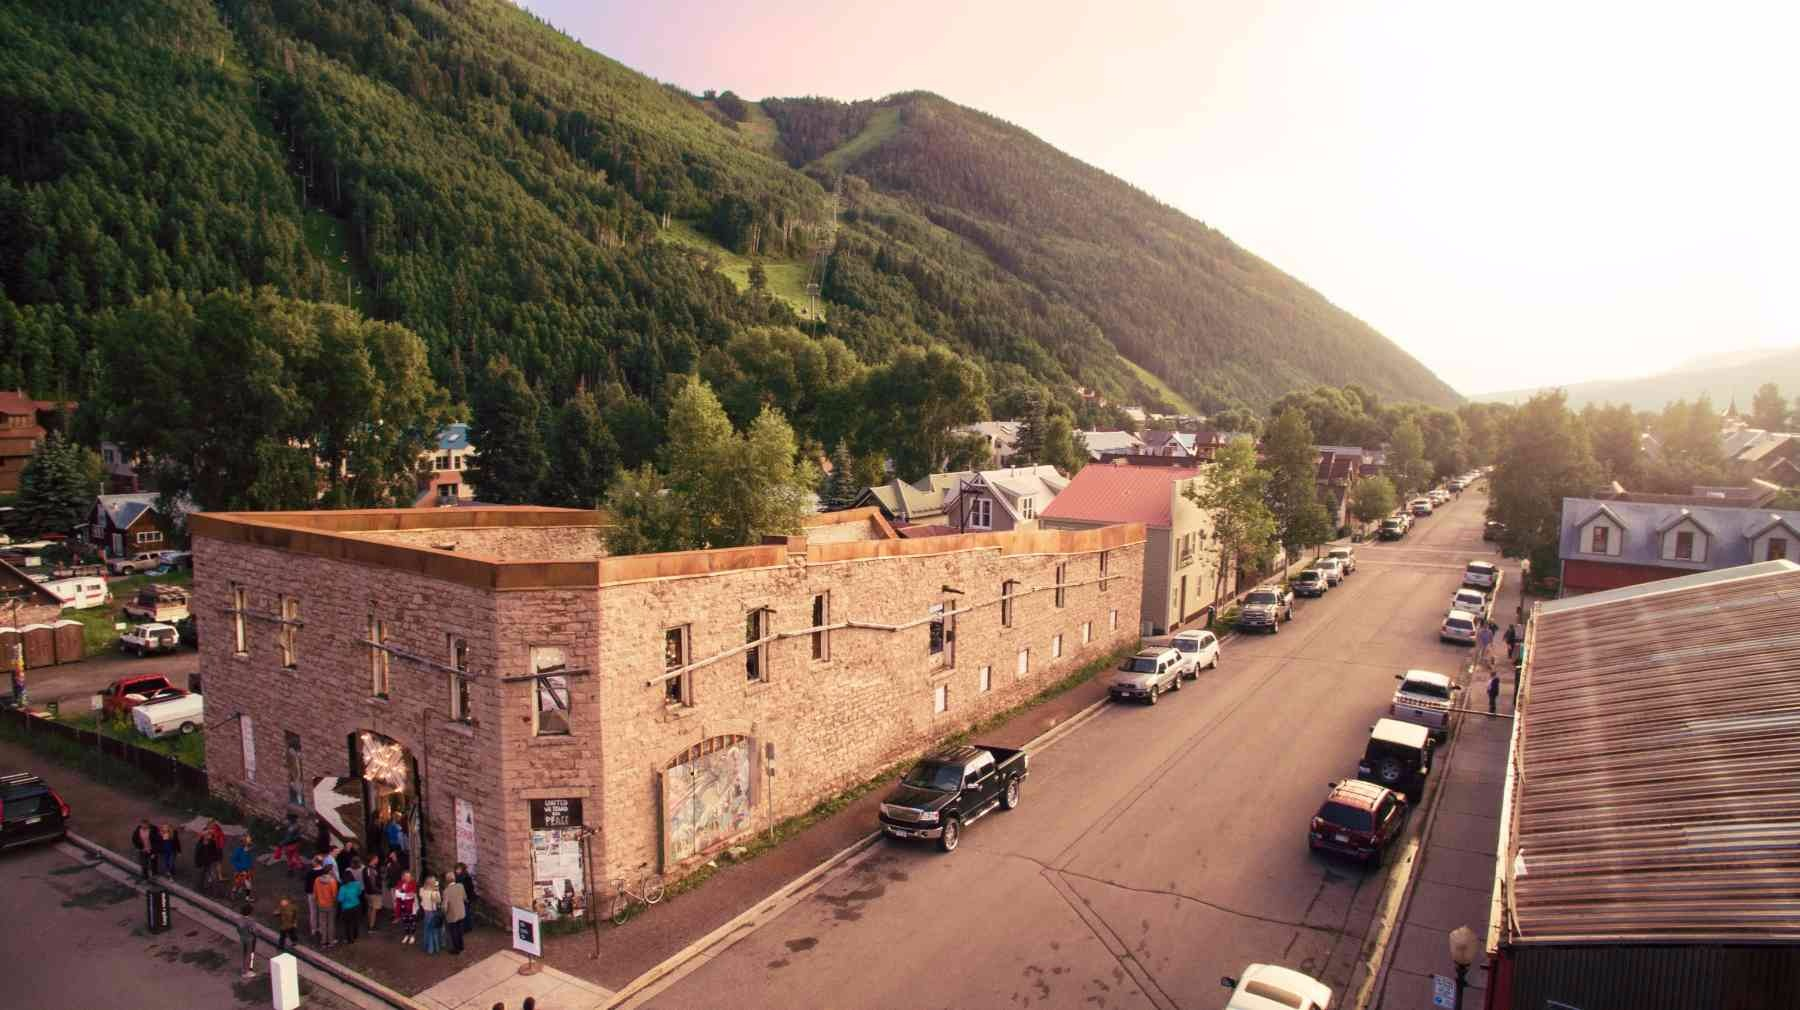 Trio of firms compete to design arts center in Telluride  Archpapercom